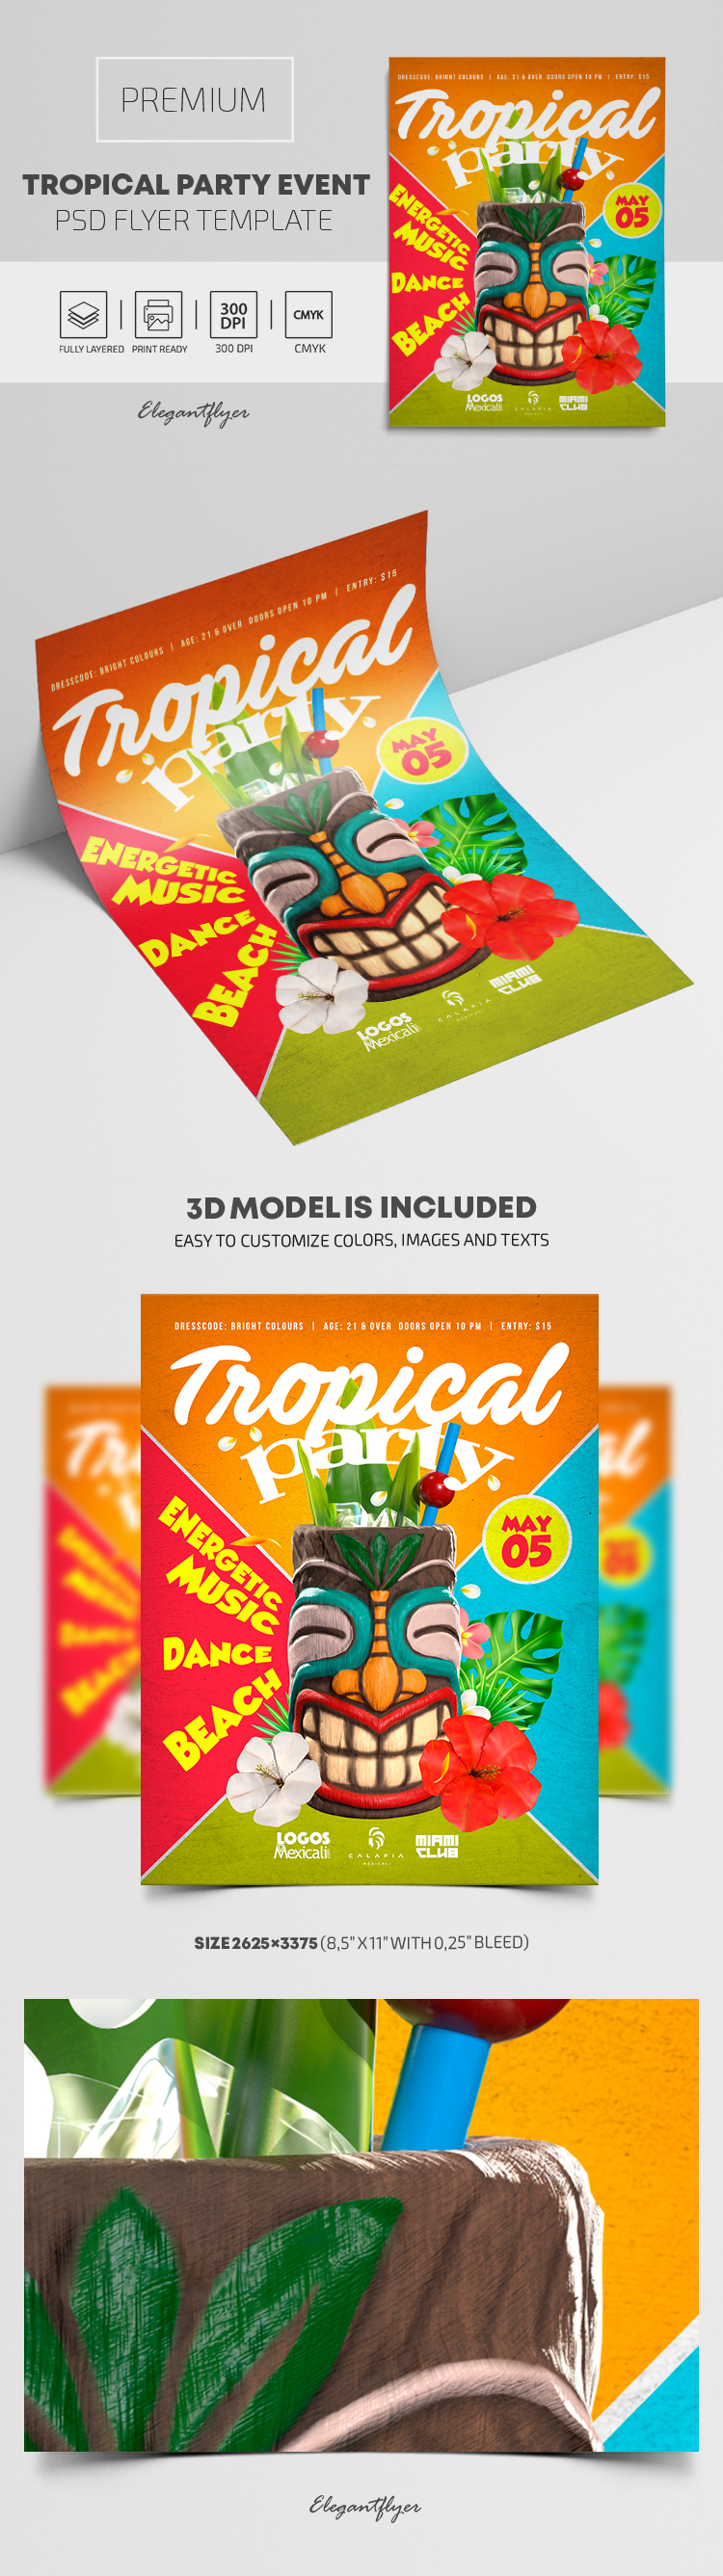 Tropical Party Event – Premium PSD Flyer Template